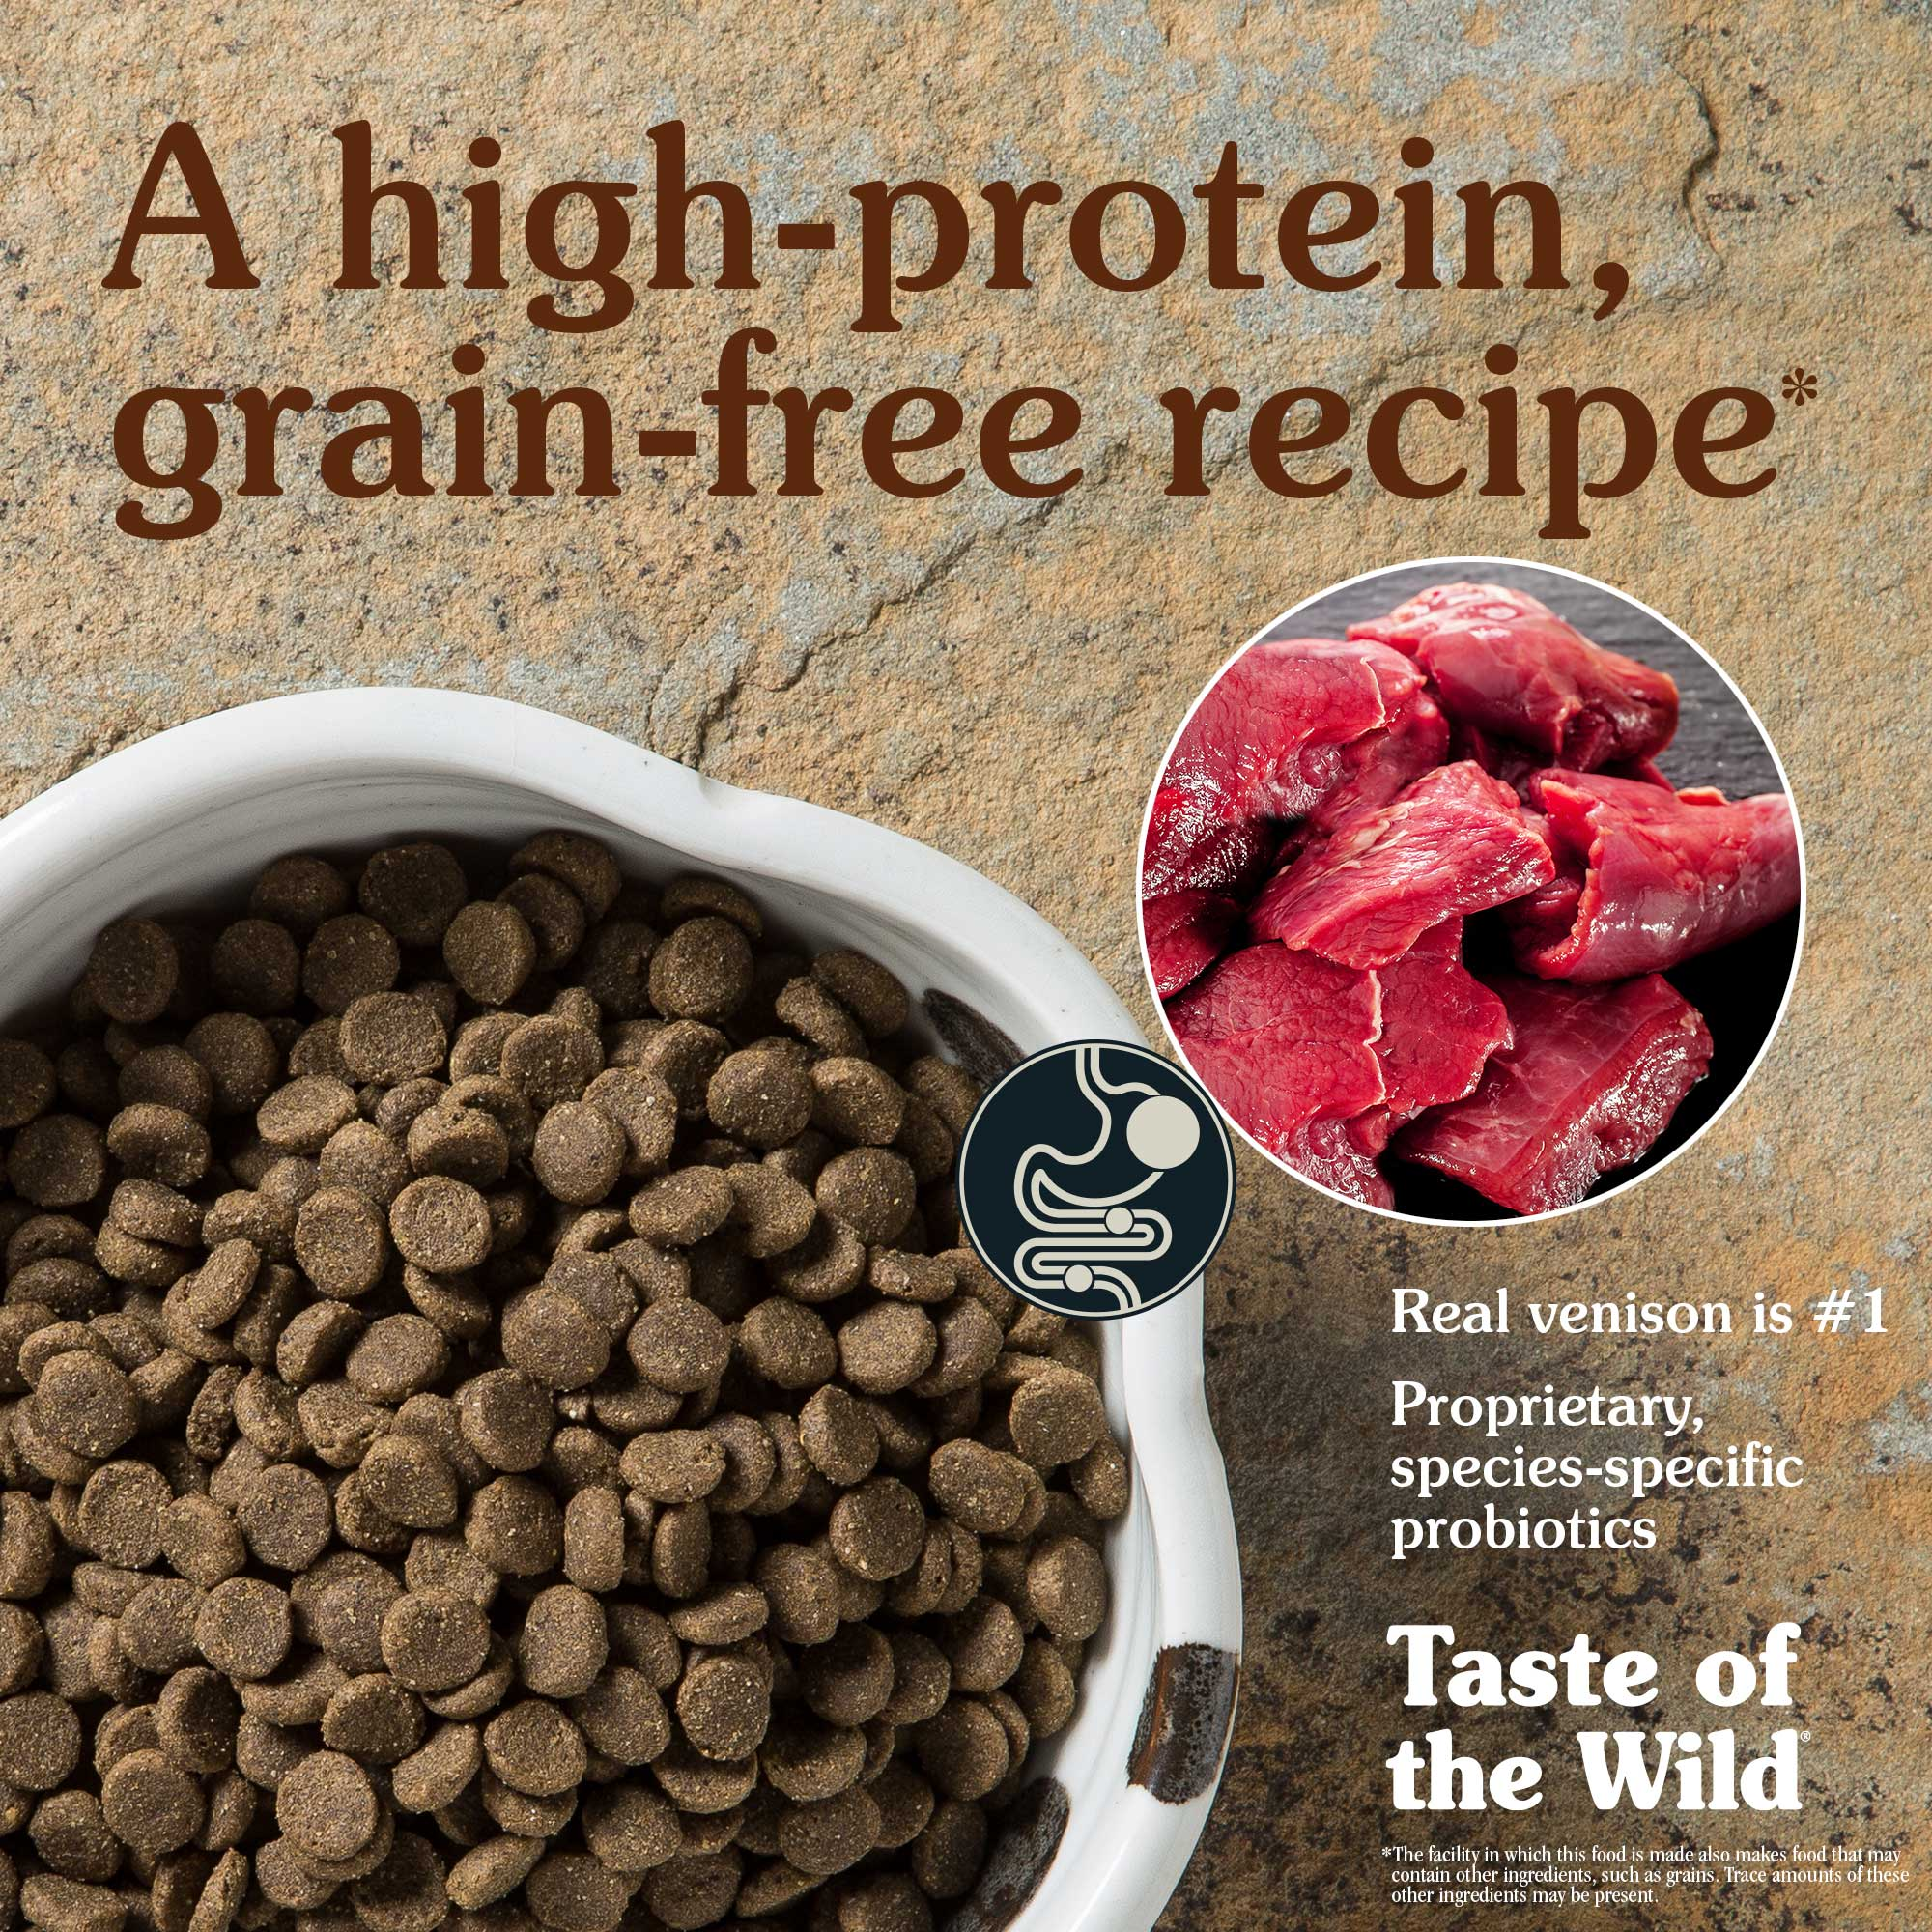 A high-protein, grain-free recipe. Real venison is #1.